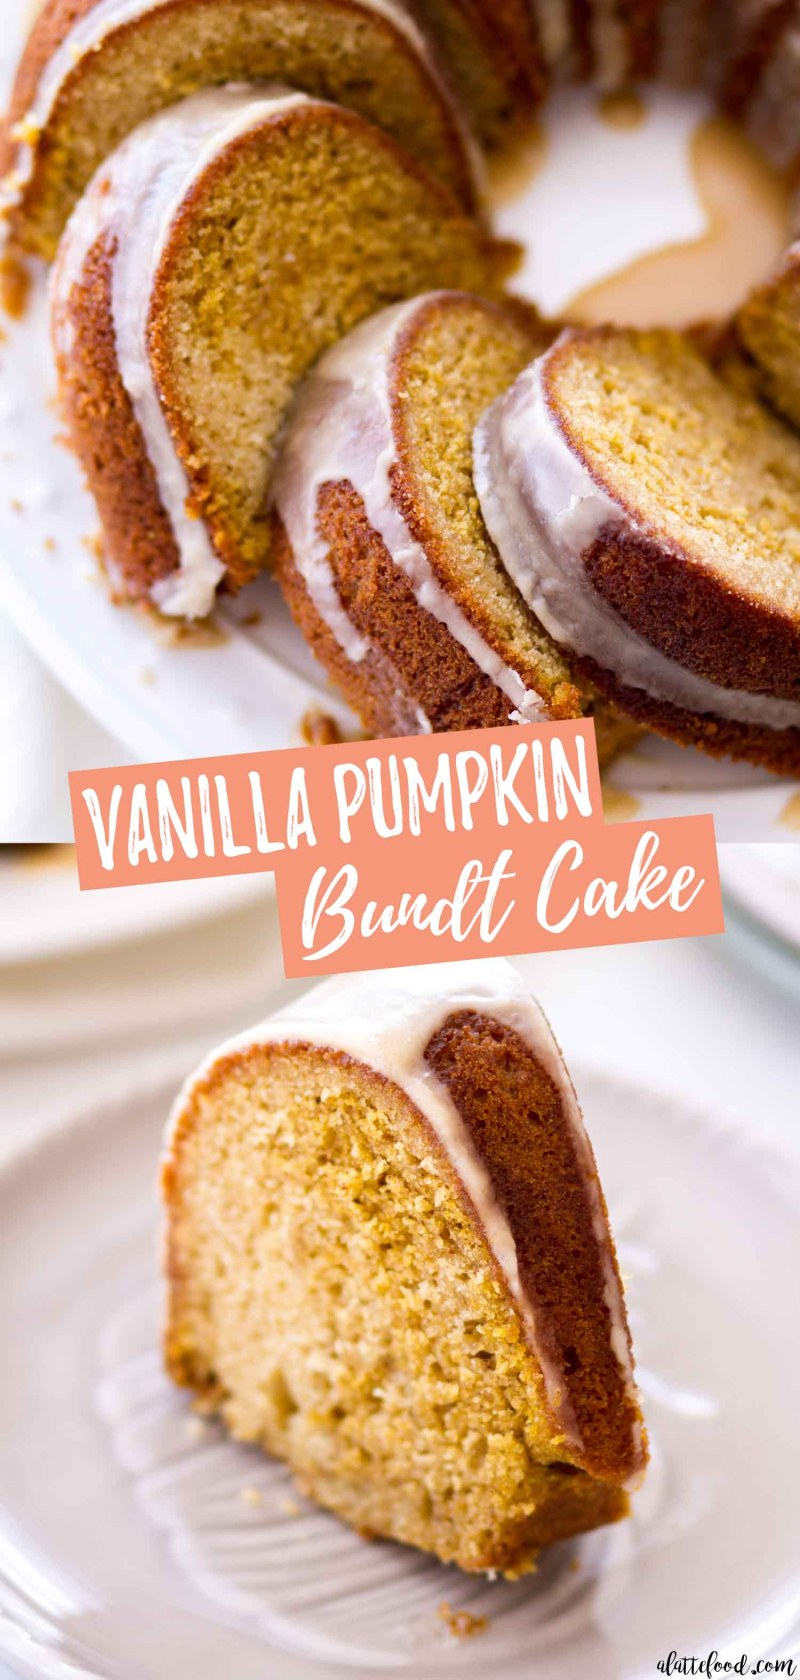 The best Vanilla Pumpkin Bundt Cake topped with a homemade marble icing